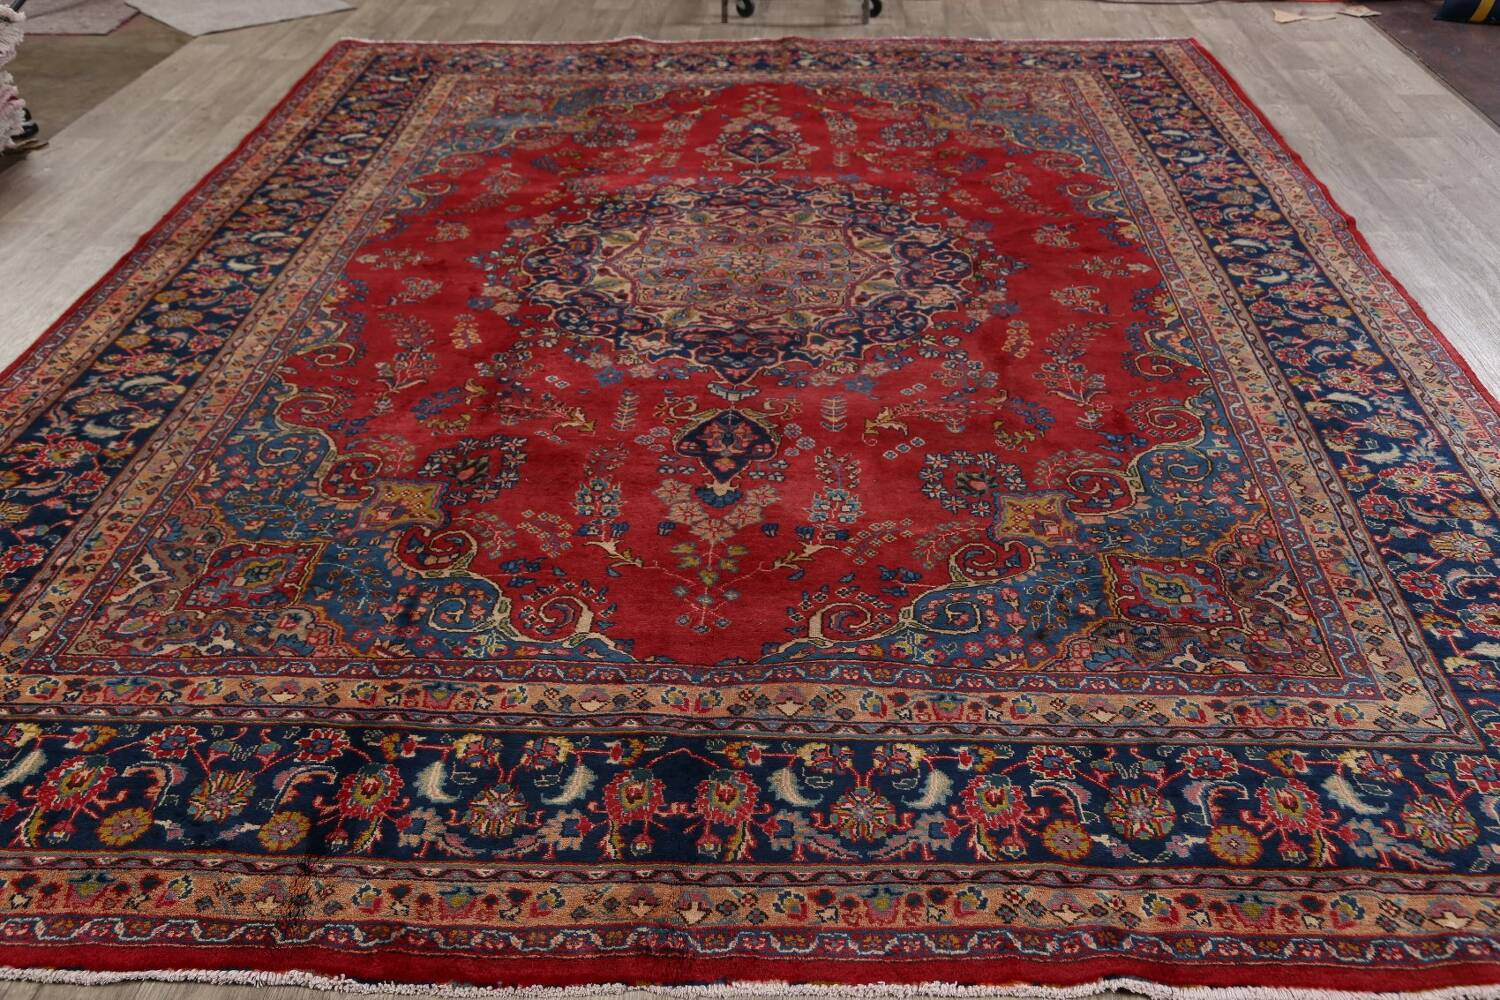 Vintage Floral Red Mashad Persian Area Rug 9x13 image 18